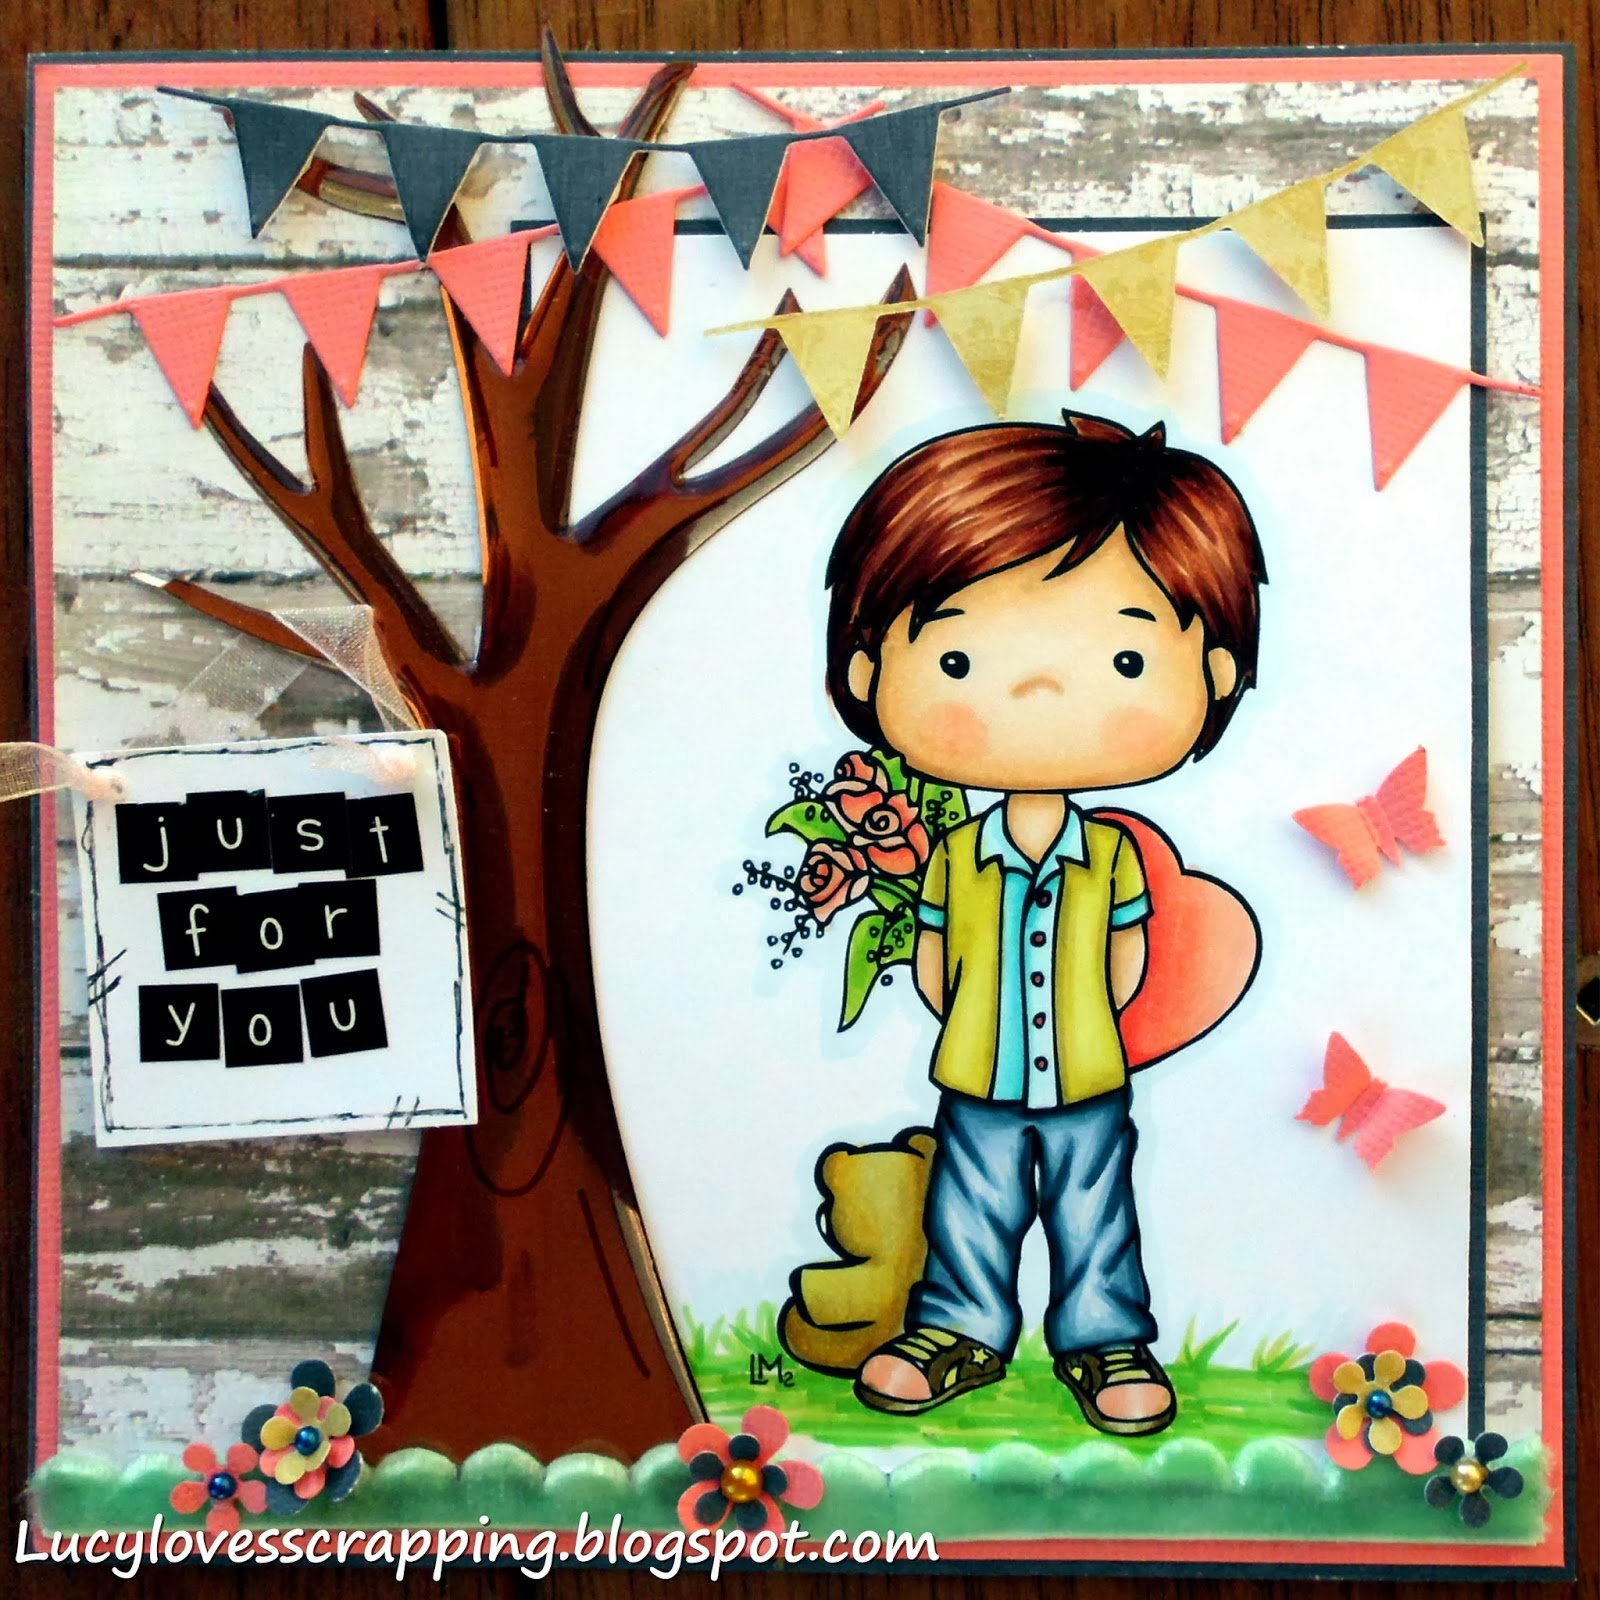 http://lucylovesscrapping.blogspot.com.au/2014/02/just-for-you-card-little-miss-muffet.html